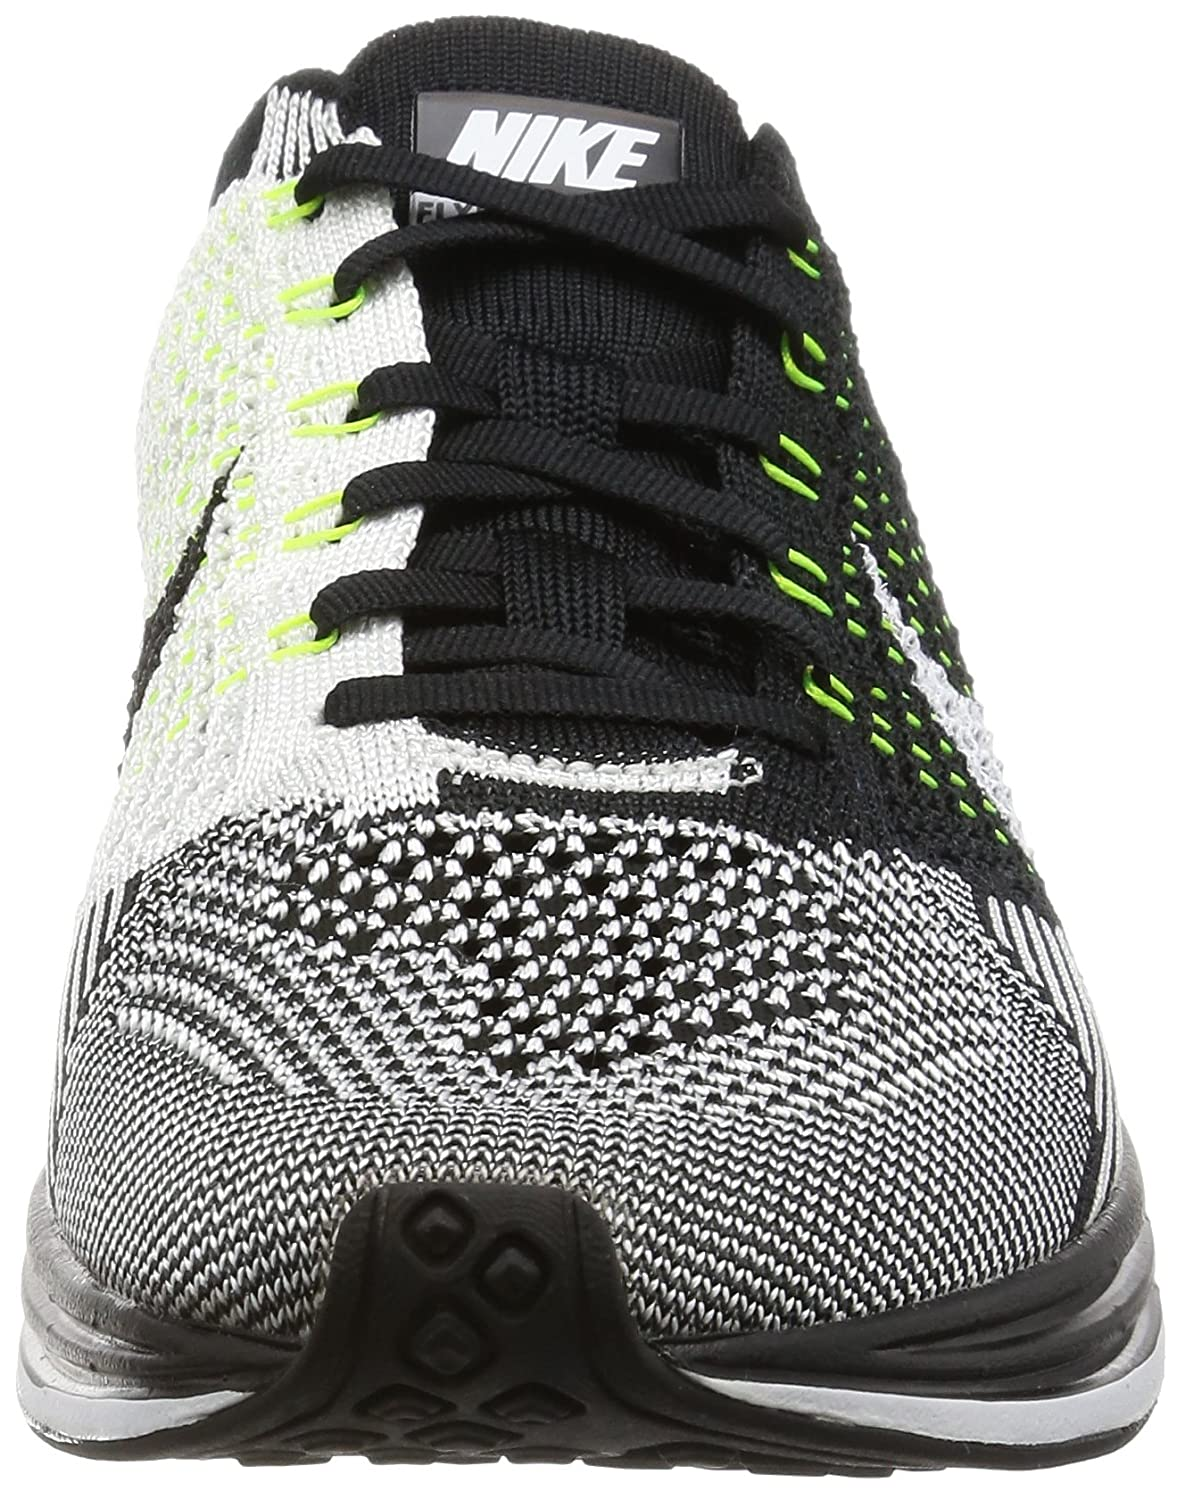 Amazon.com | Nike Flyknit Racer Unisex Running Trainers 526628 Sneakers Shoes (4.5 D(M) US, Black White White 011) | Road Running